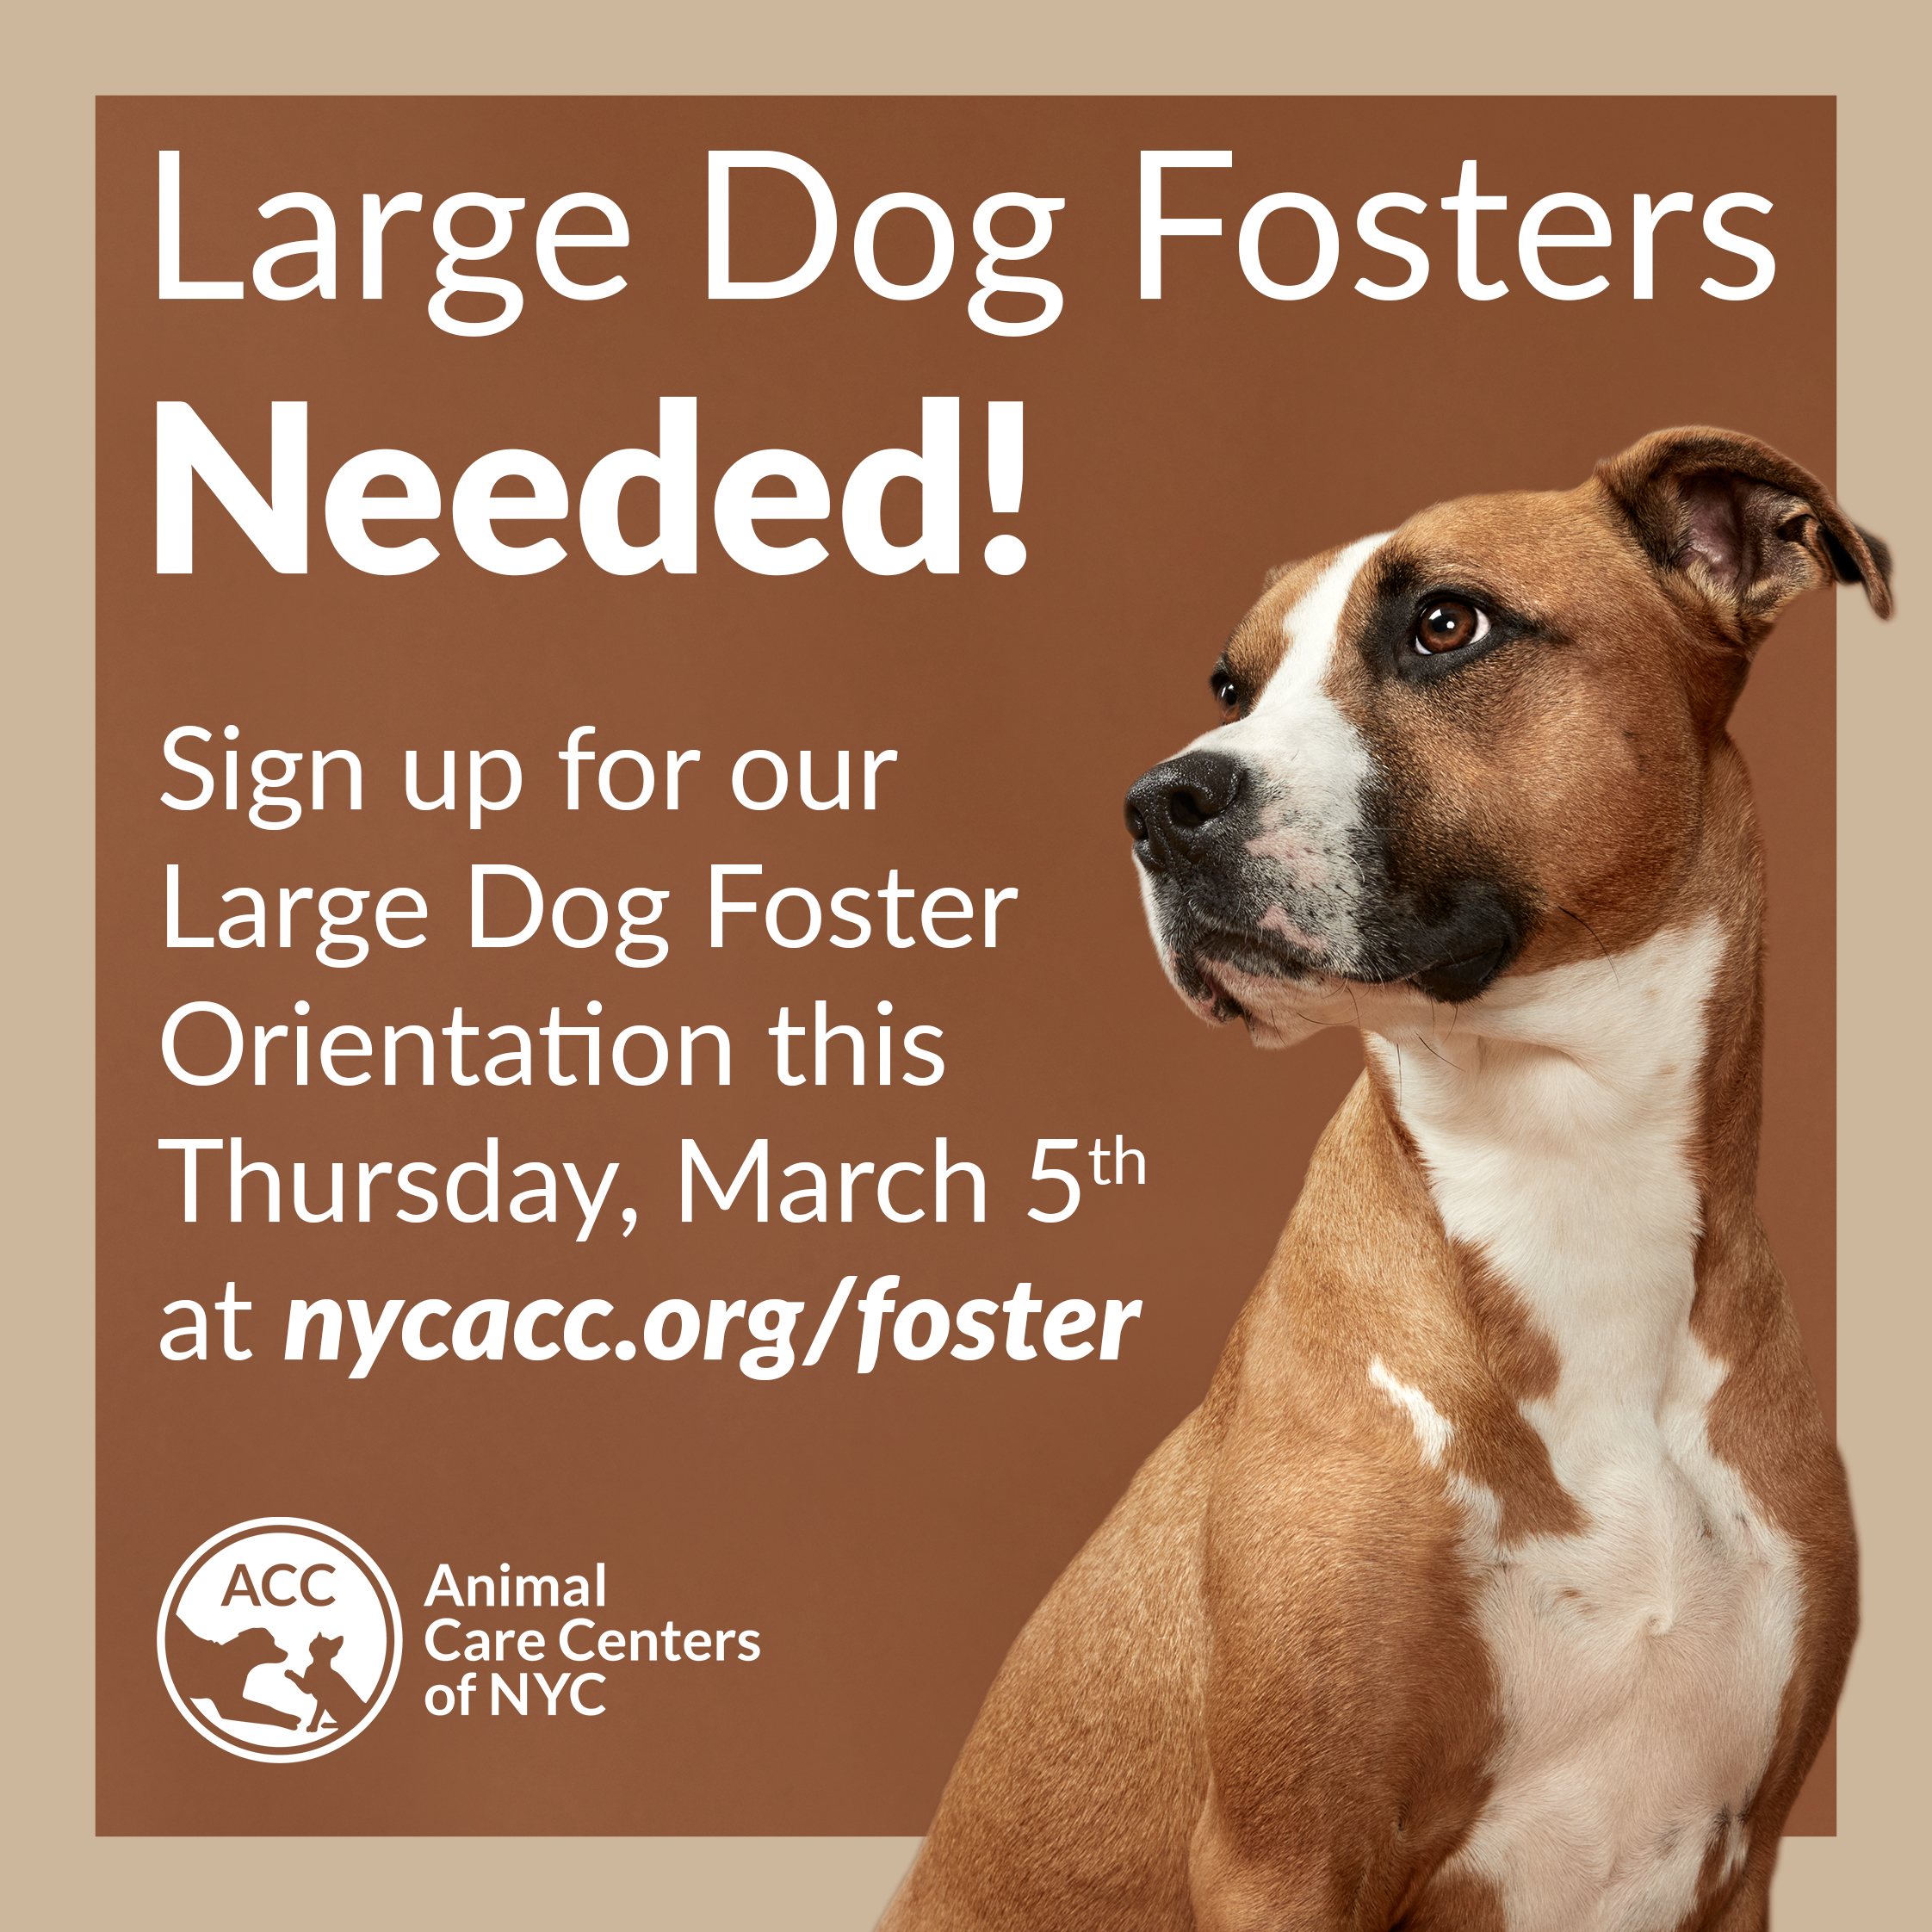 Large dog foster orientation